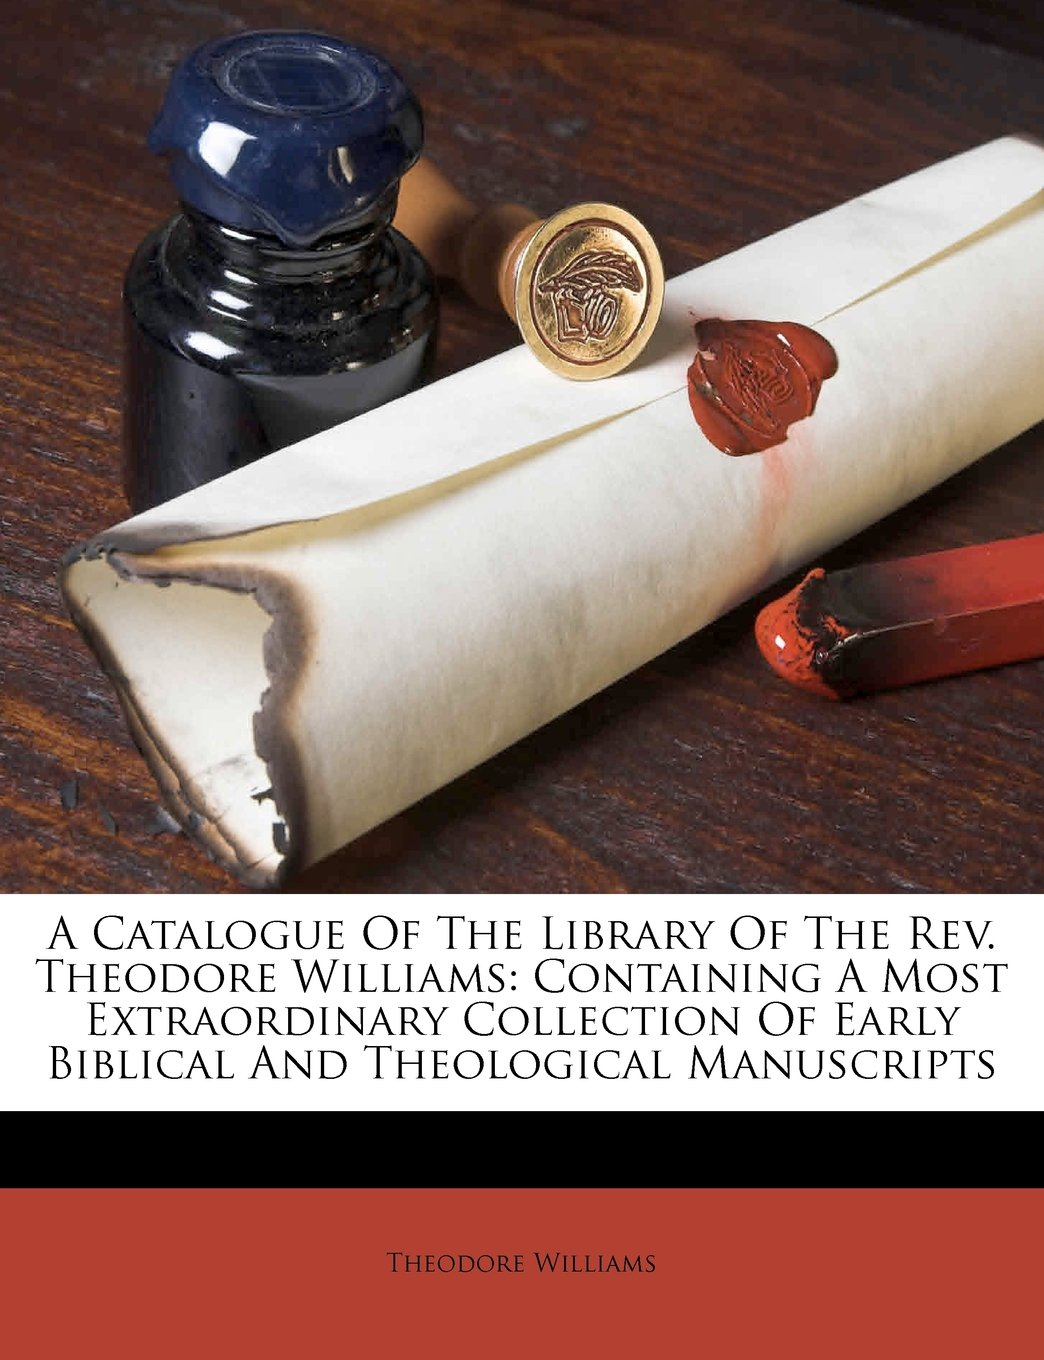 Download A Catalogue Of The Library Of The Rev. Theodore Williams: Containing A Most Extraordinary Collection Of Early Biblical And Theological Manuscripts PDF